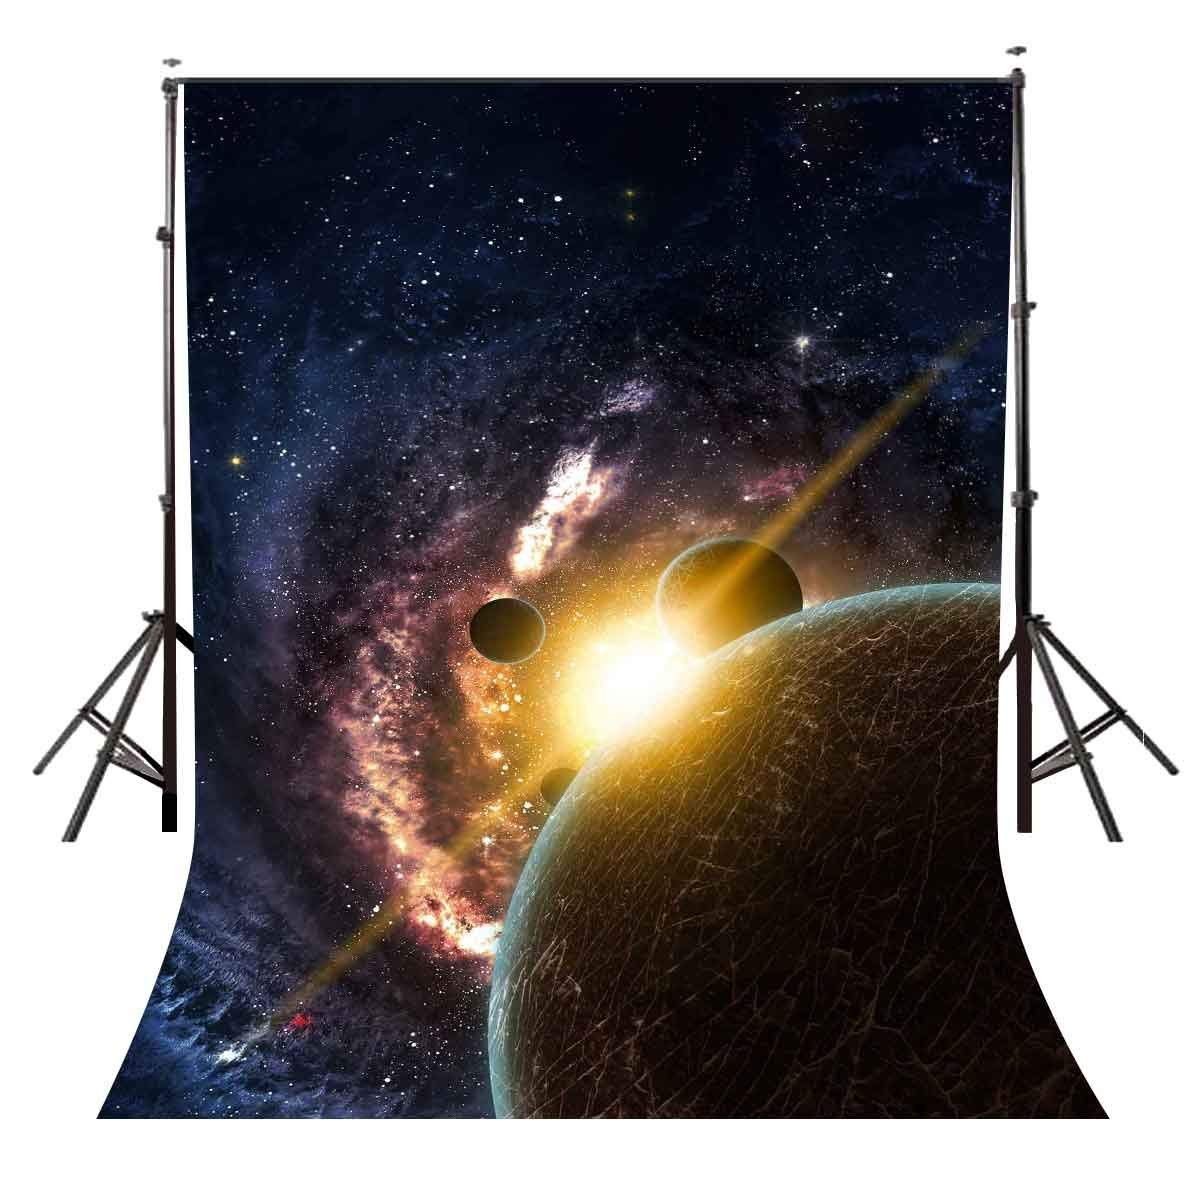 5x7ft Starry Sky Backdrop Dark Color Cosmic Science Photography Background and Studio Photography Backdrop Props-in Photo Studio Accessories from Consumer Electronics